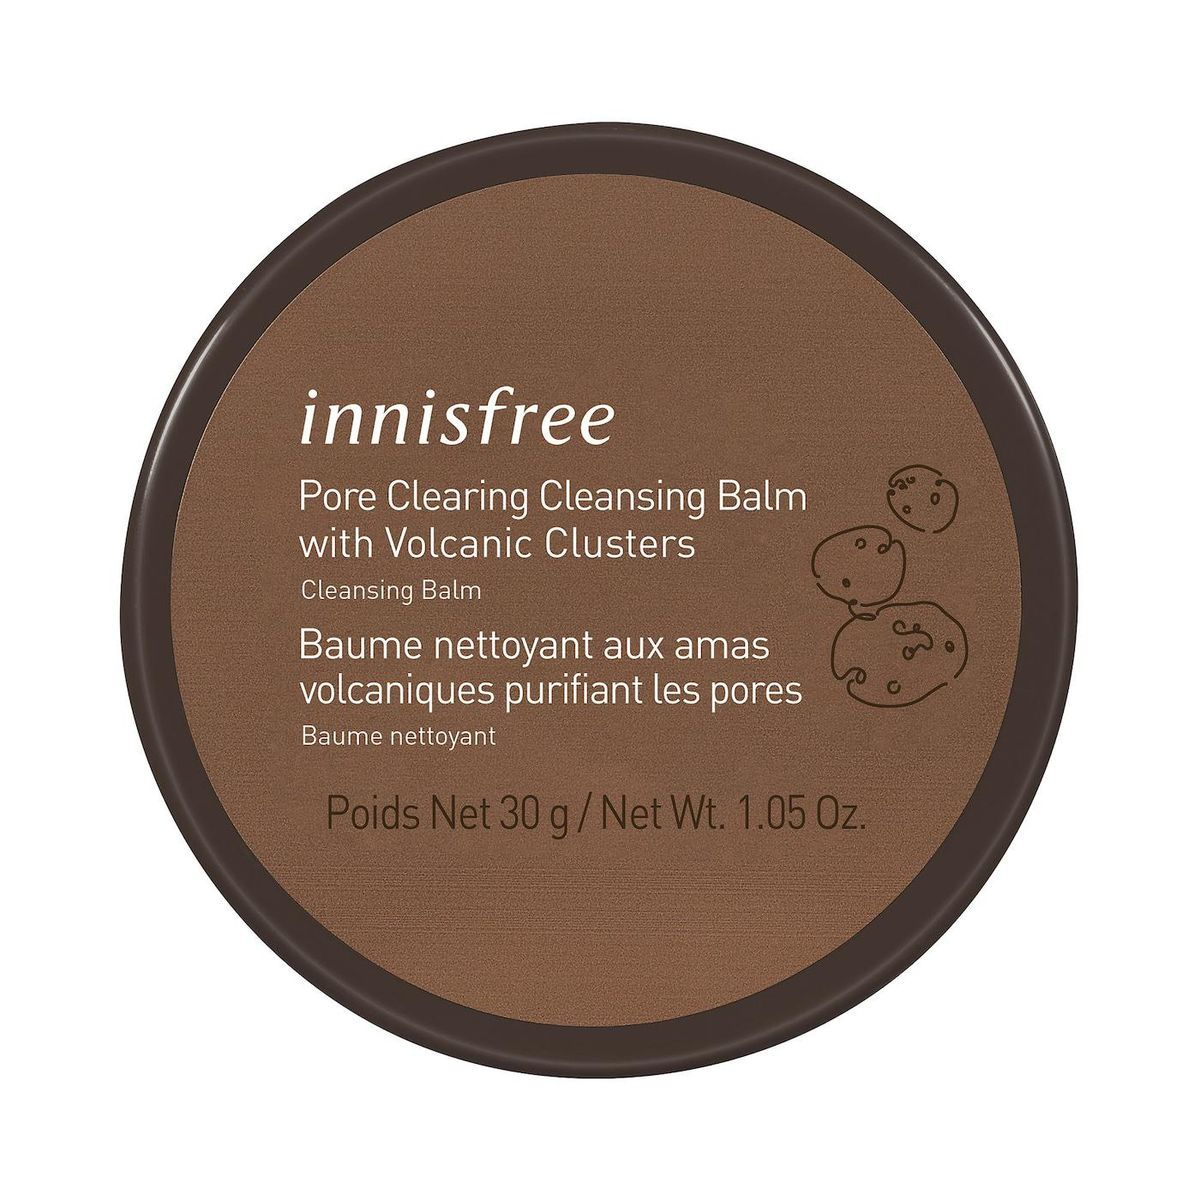 innisfree pore clearing volcanic cleansing balm